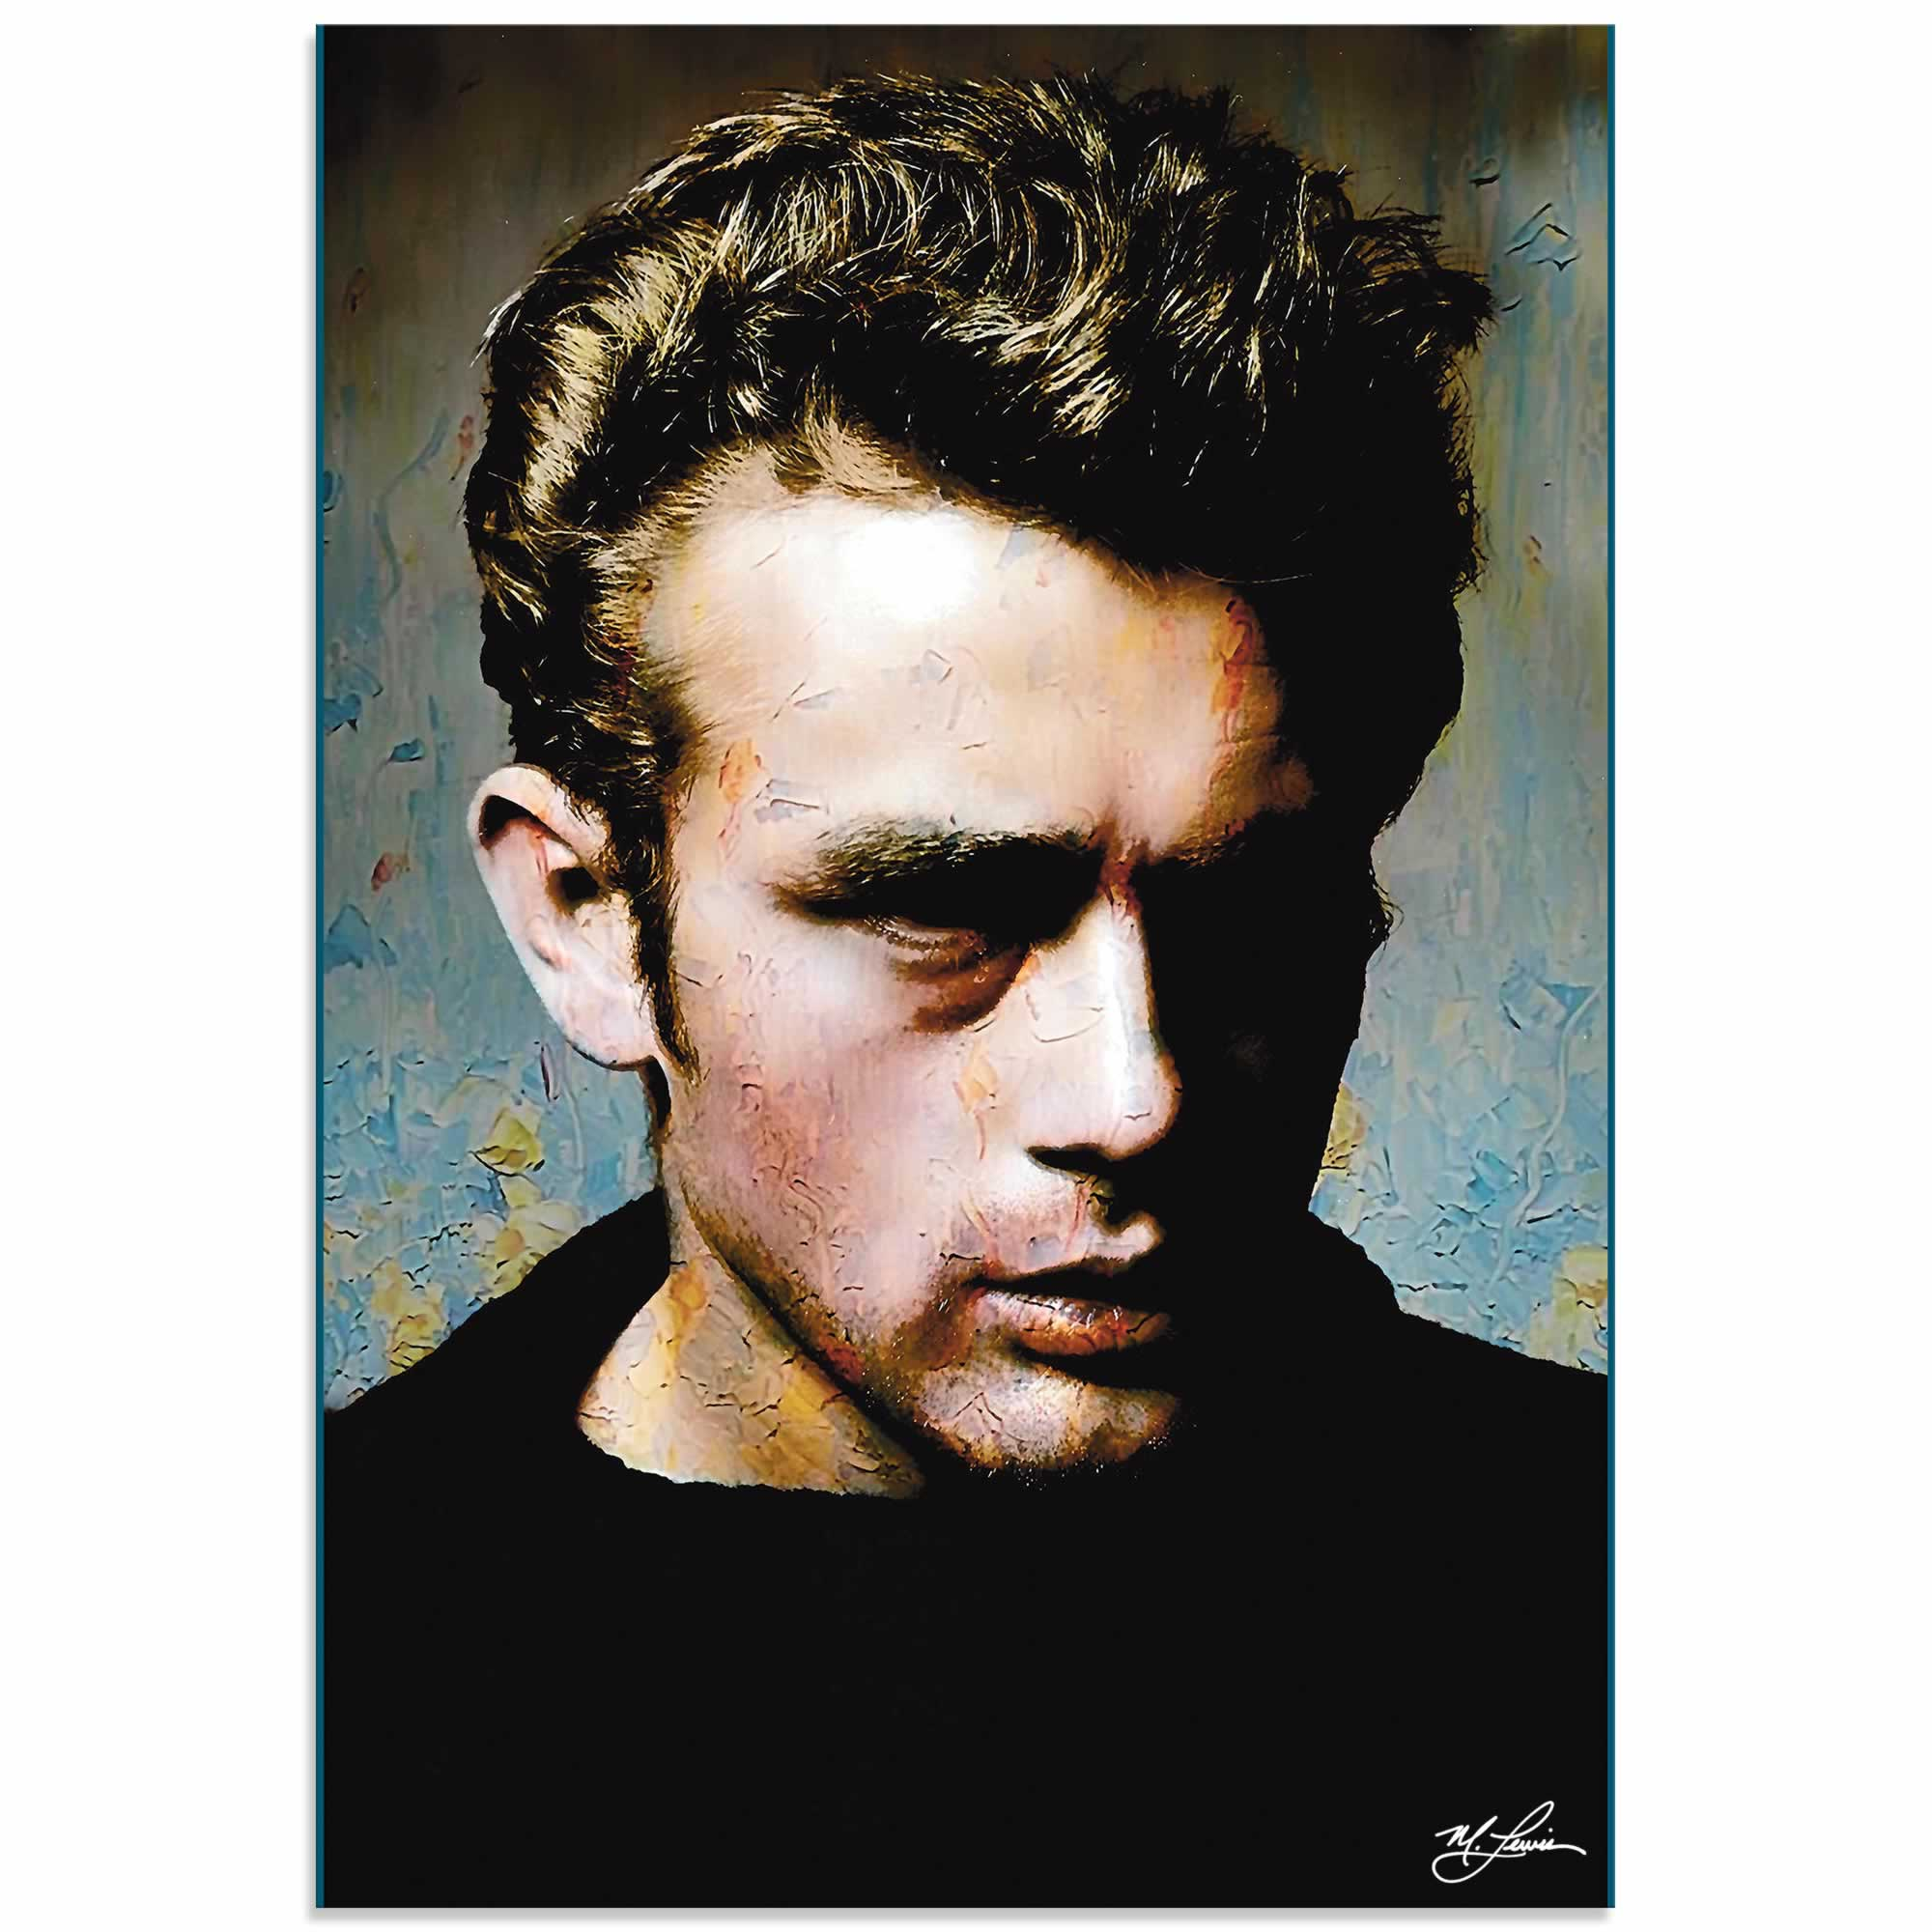 James Dean Gentle Trust | Pop Art Painting by Mark Lewis, Signed & Numbered Limited Edition